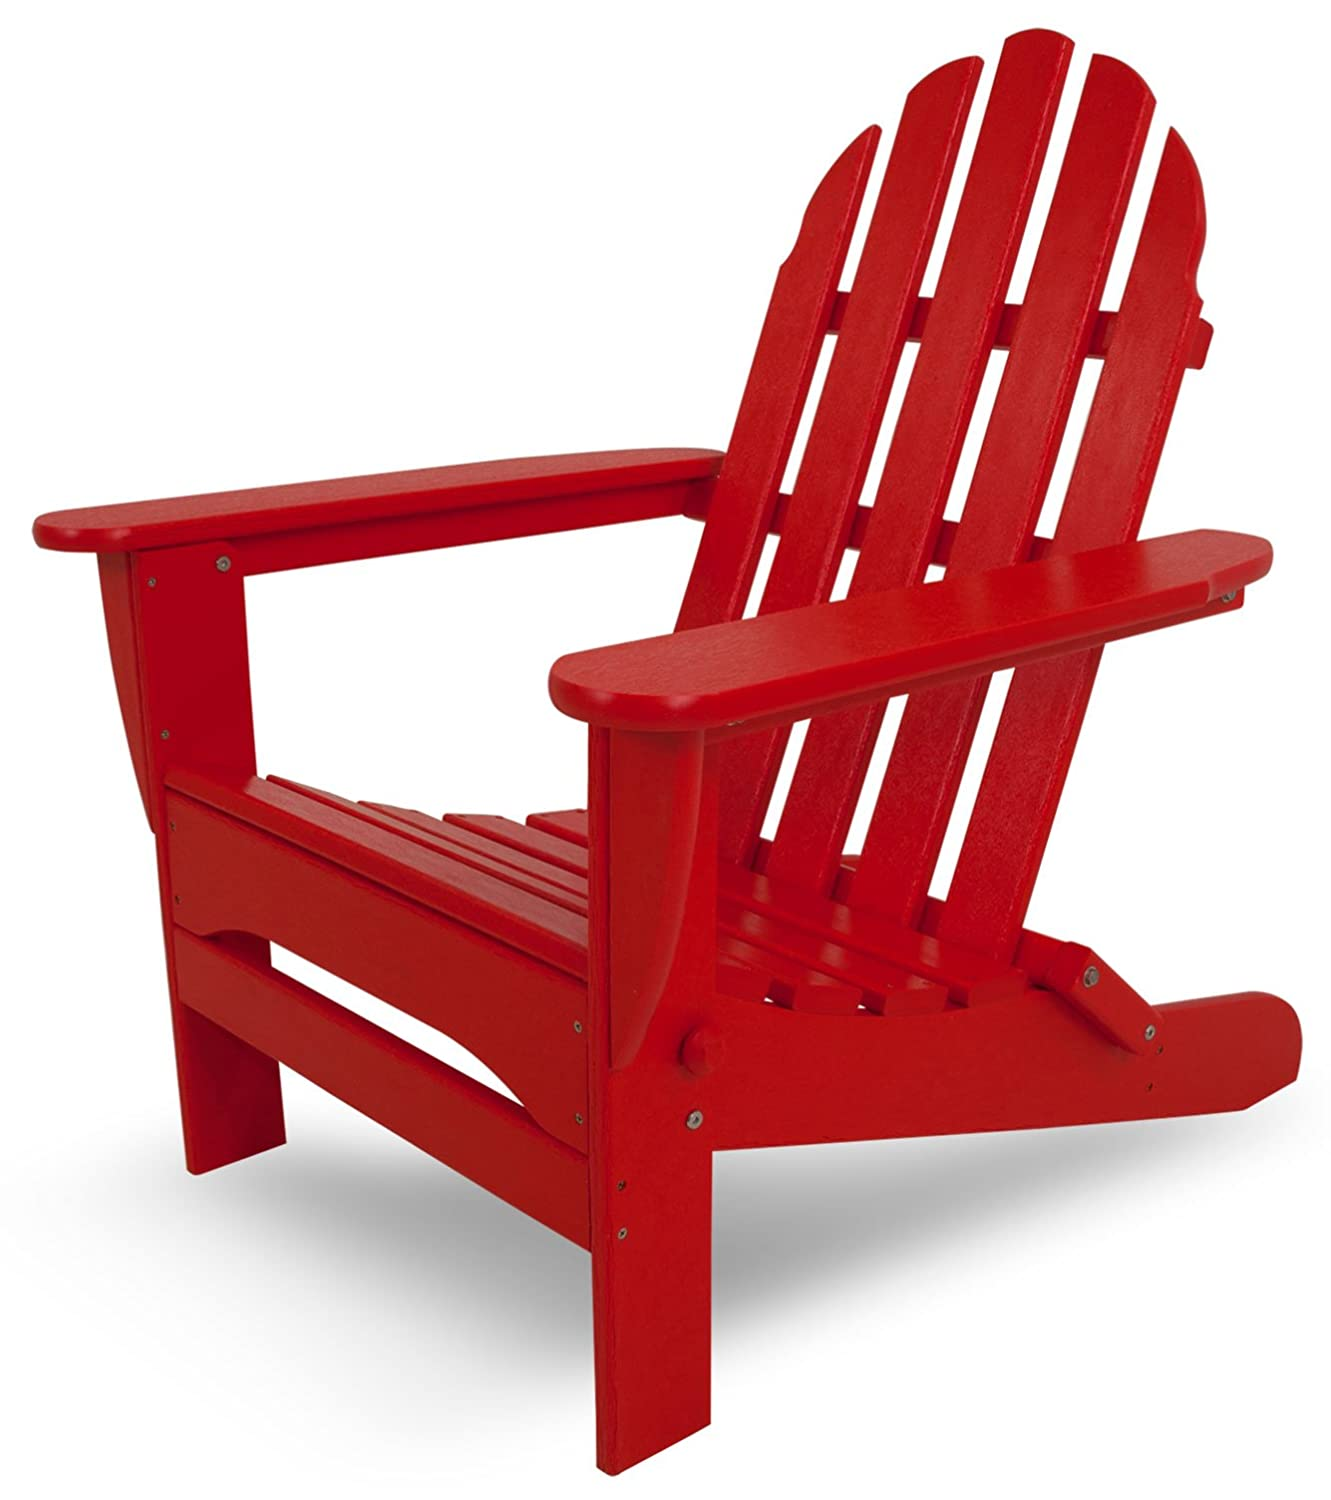 Amazon.com : POLYWOOD AD5030SR Classic Folding Adirondack, Sunset Red : Adirondack  Chairs : Garden U0026 Outdoor